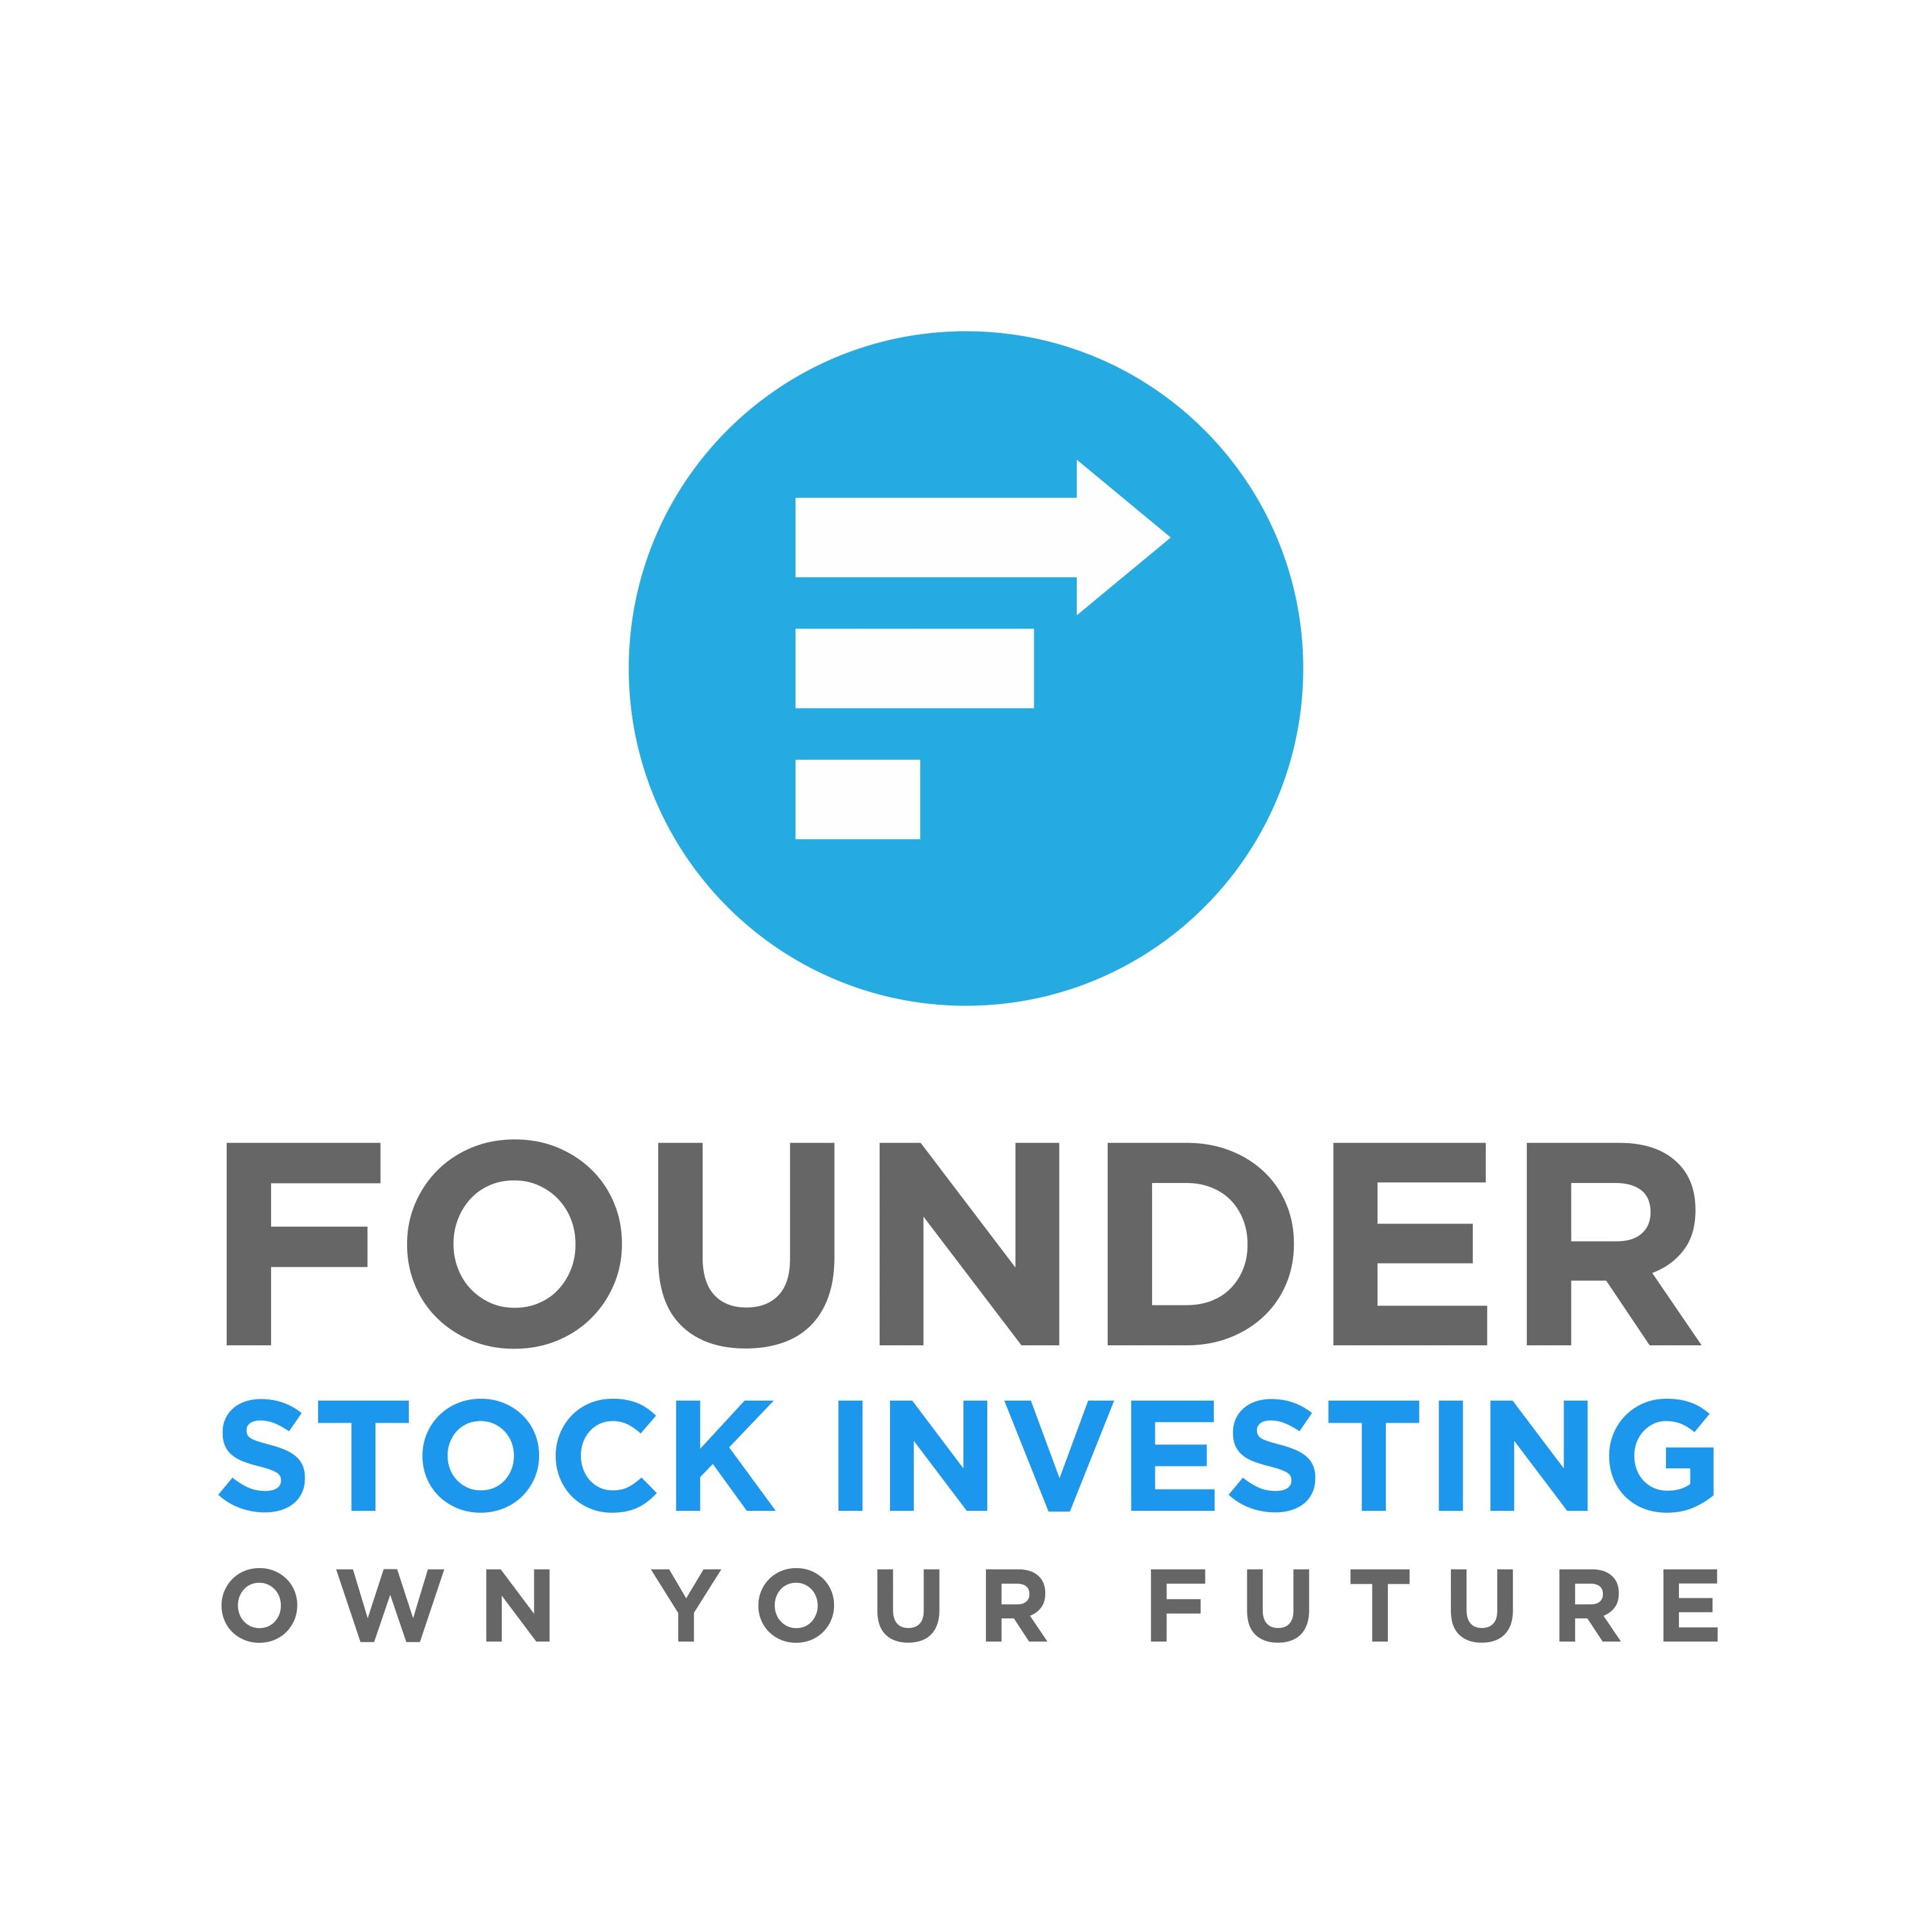 How To Get Your Kids Started Investing. Jason Moser. The Motley Fool. Founder Stock Investing -- 009